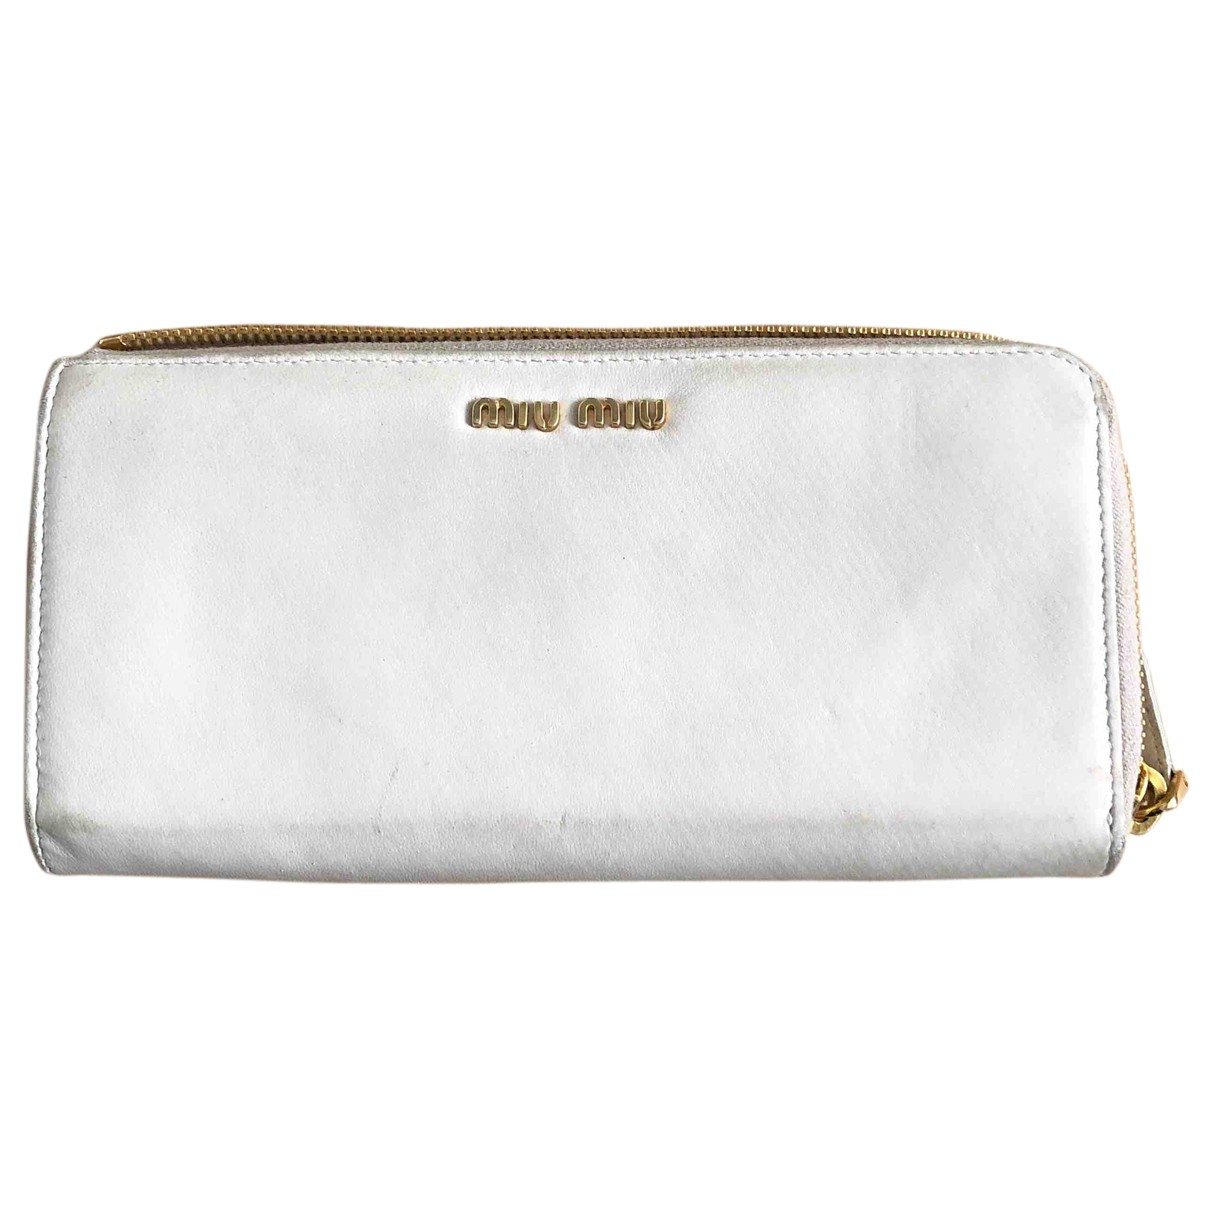 Miu Miu N White Leather Purses, wallet & cases for Women N